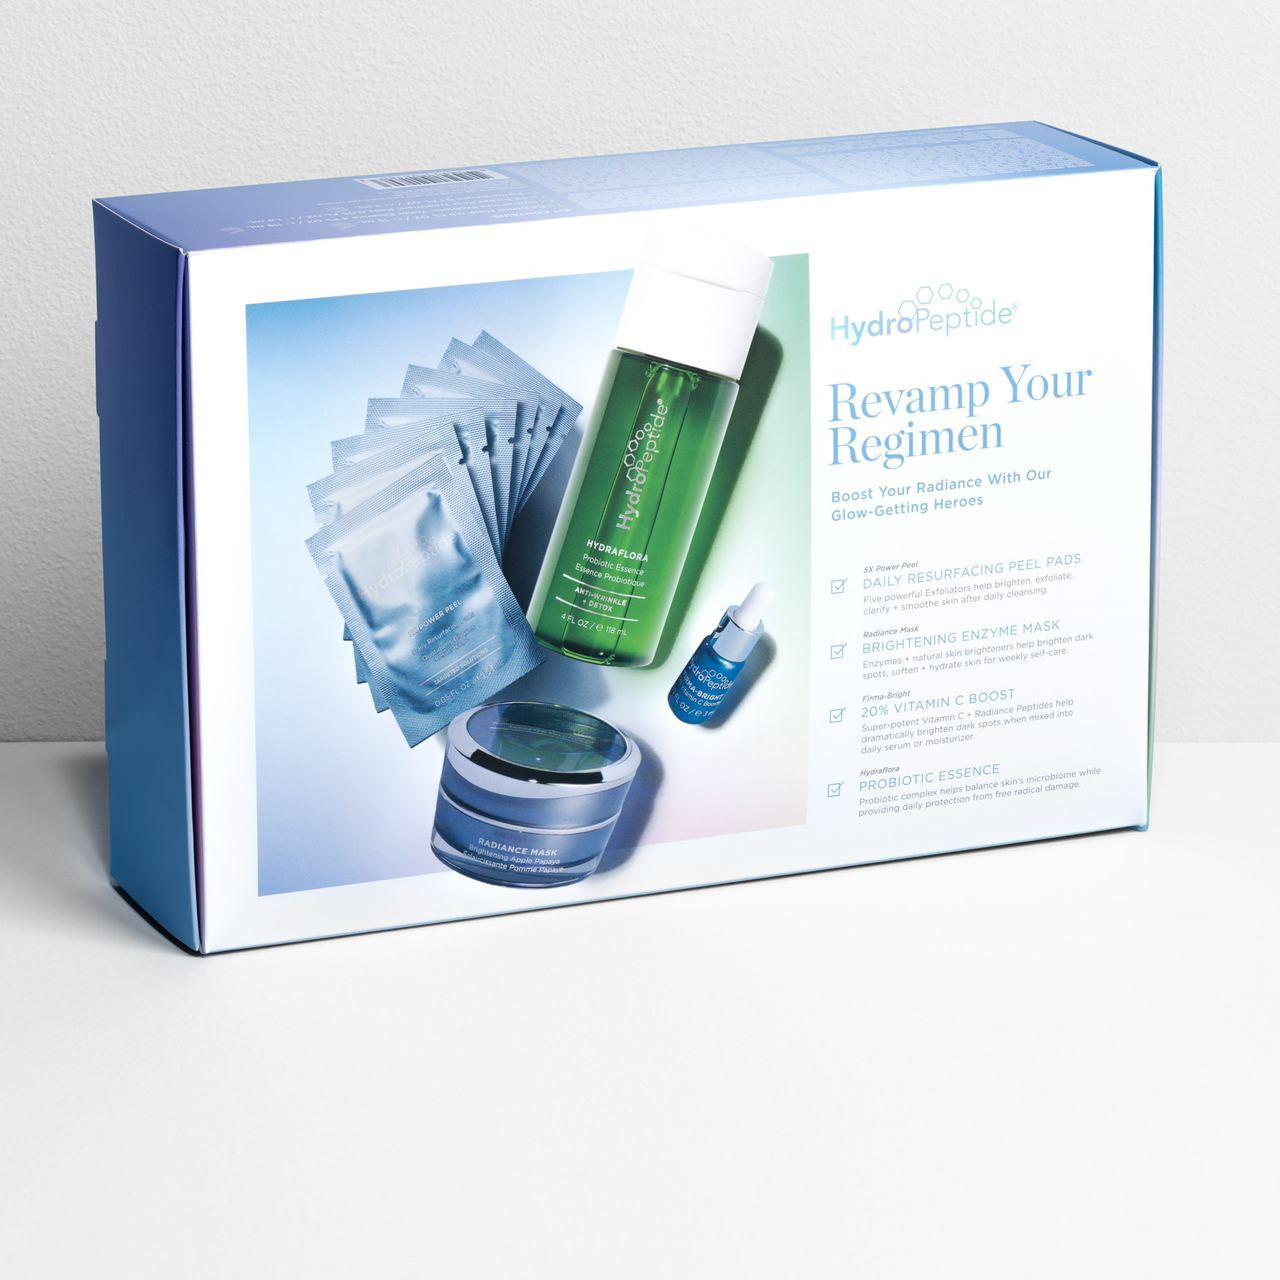 HYDROPEPTIDE REVAMP YOUR REGIMEN KIT